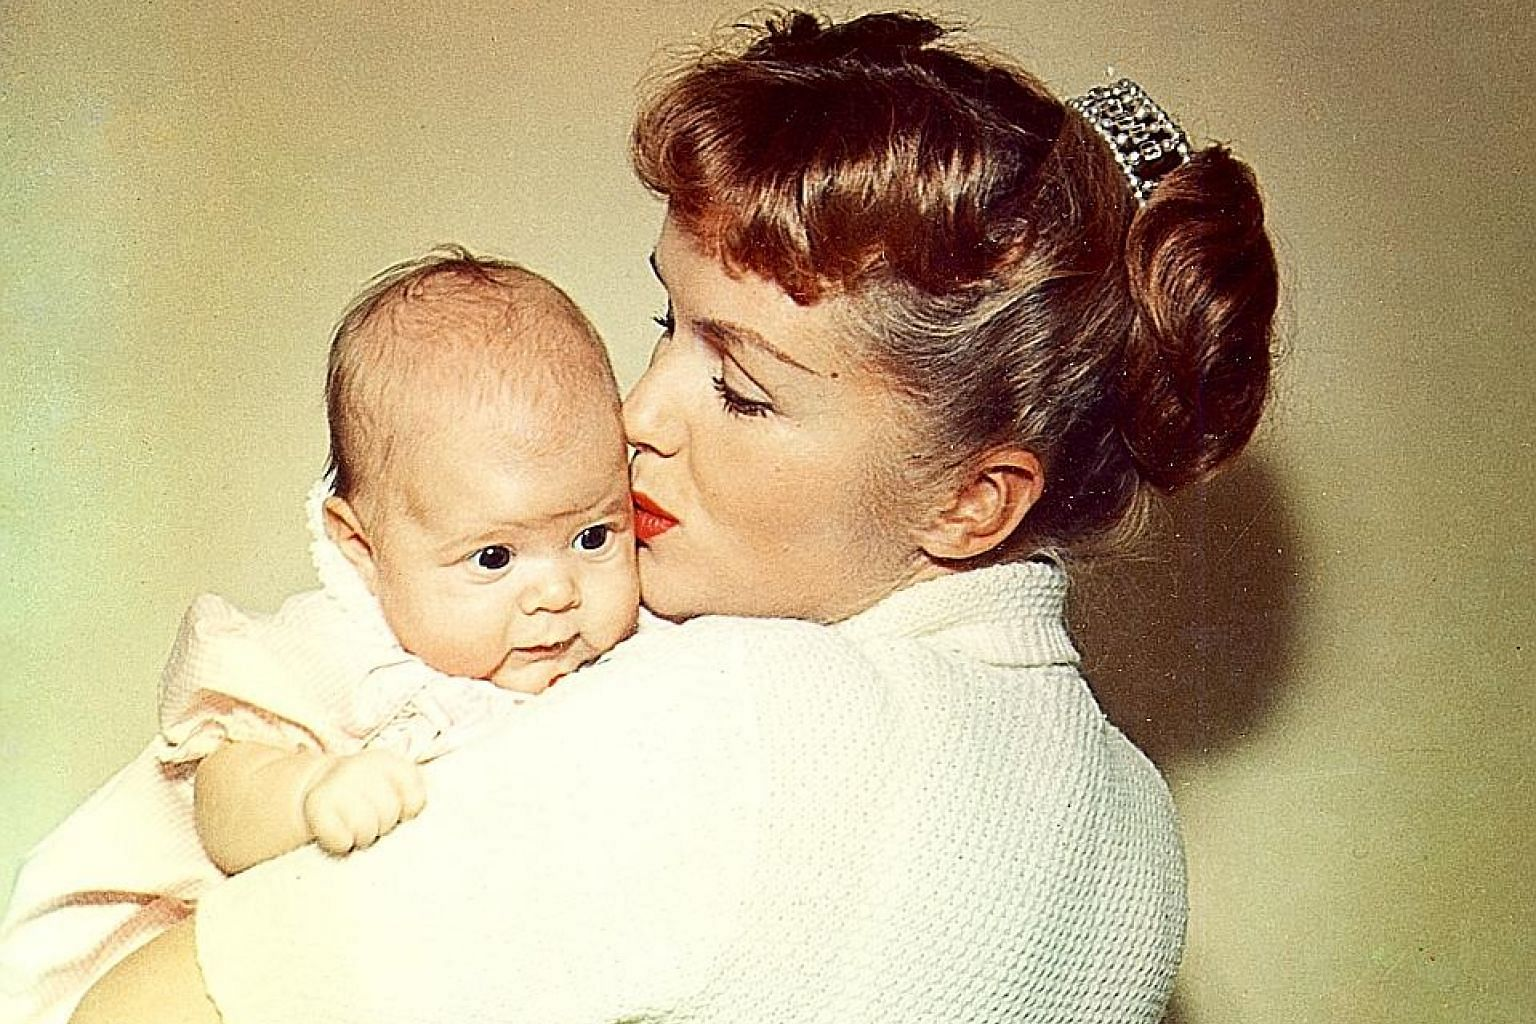 Debbie Reynolds and an infant Carrie Fisher in Bright Lights: Starring Carrie Fisher And Debbie Reynolds.